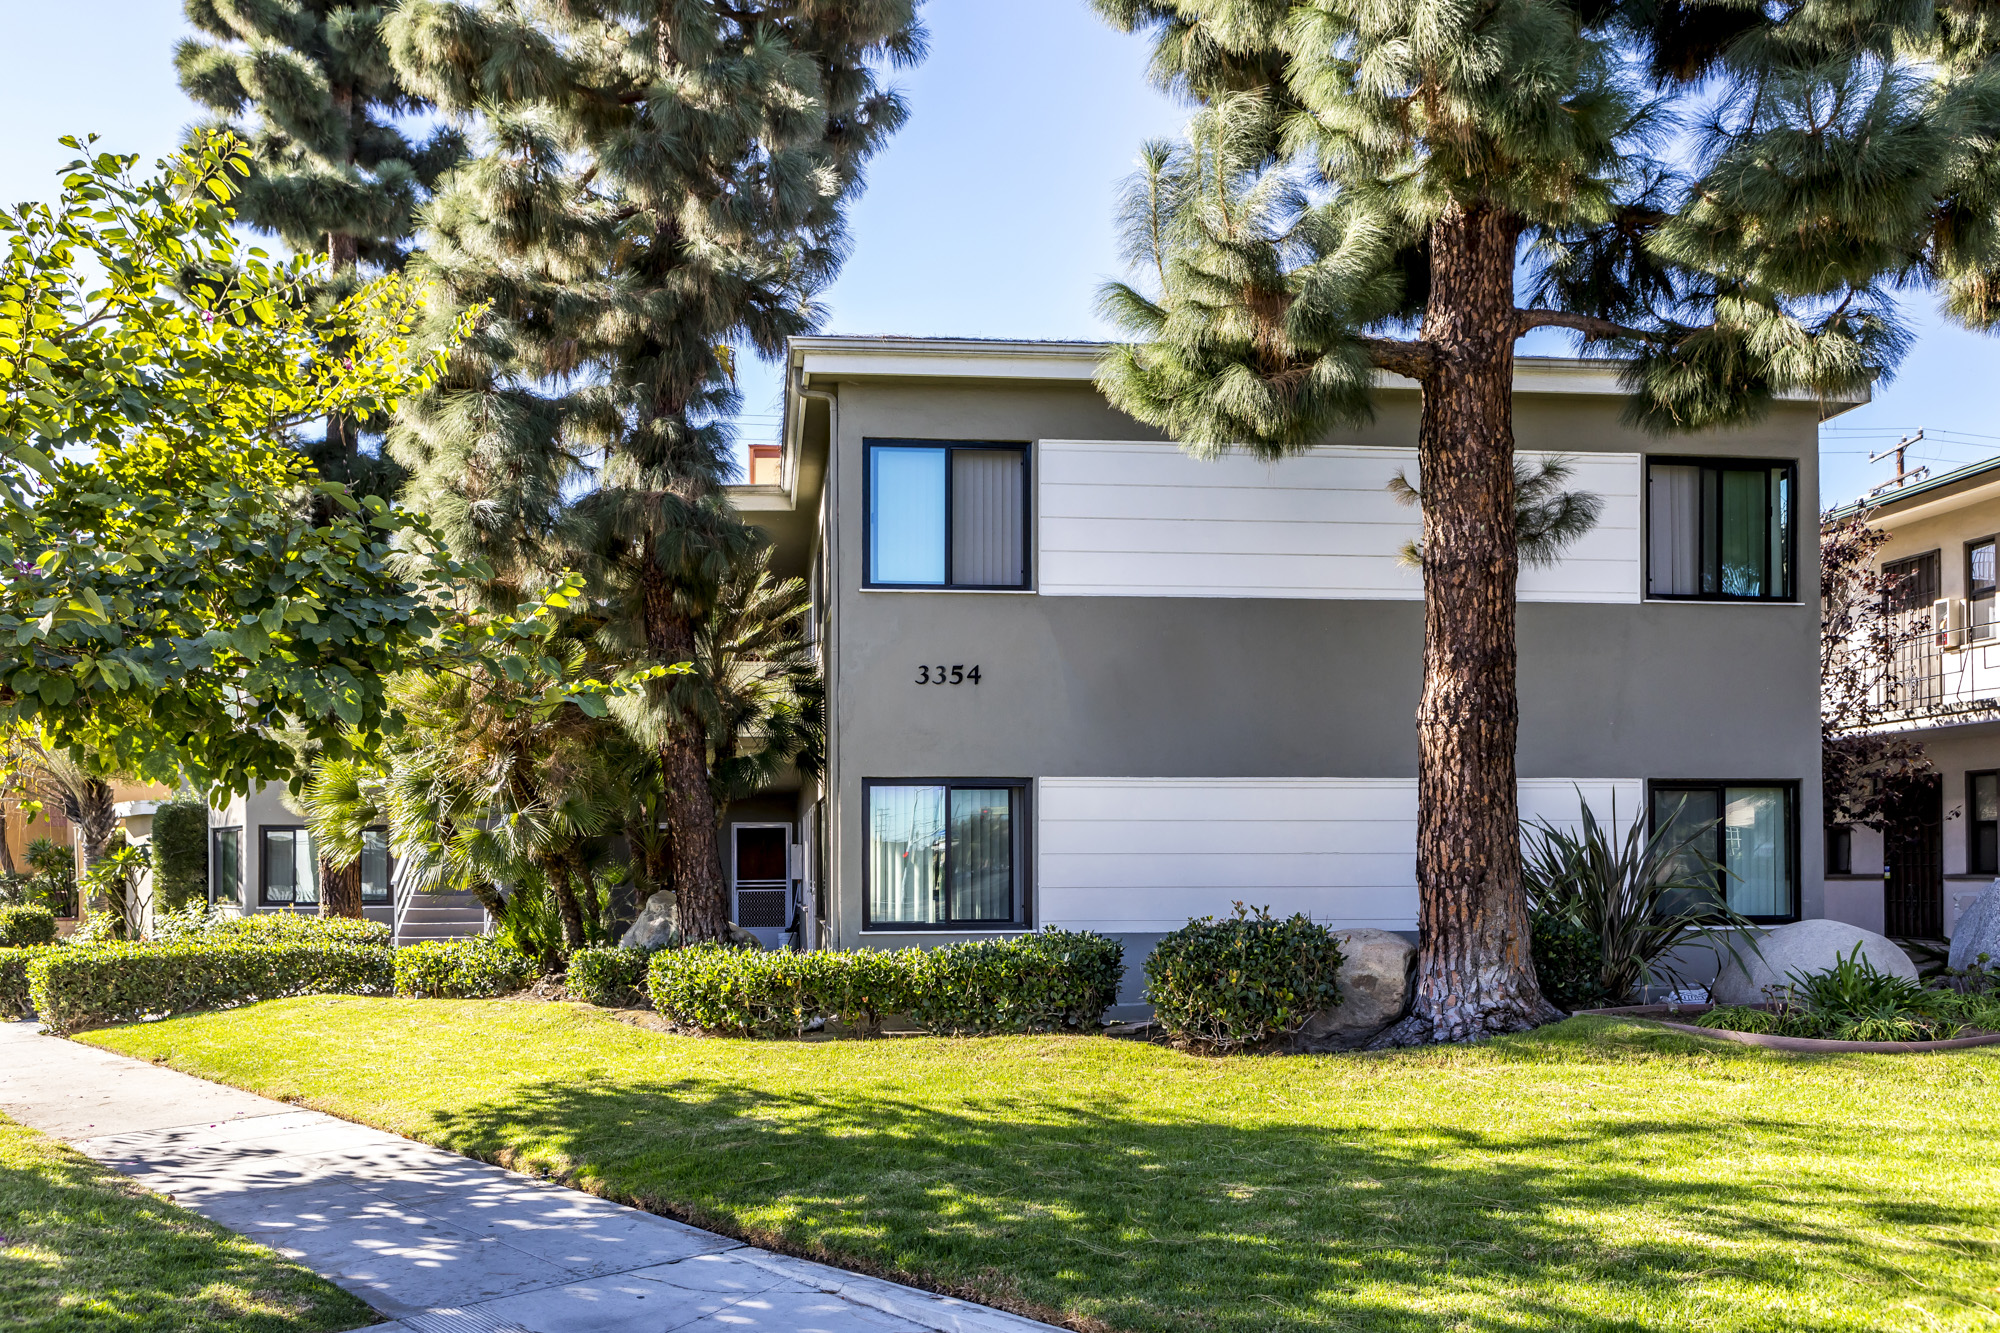 3354 East 2nd St, Long Beach, CA 90803